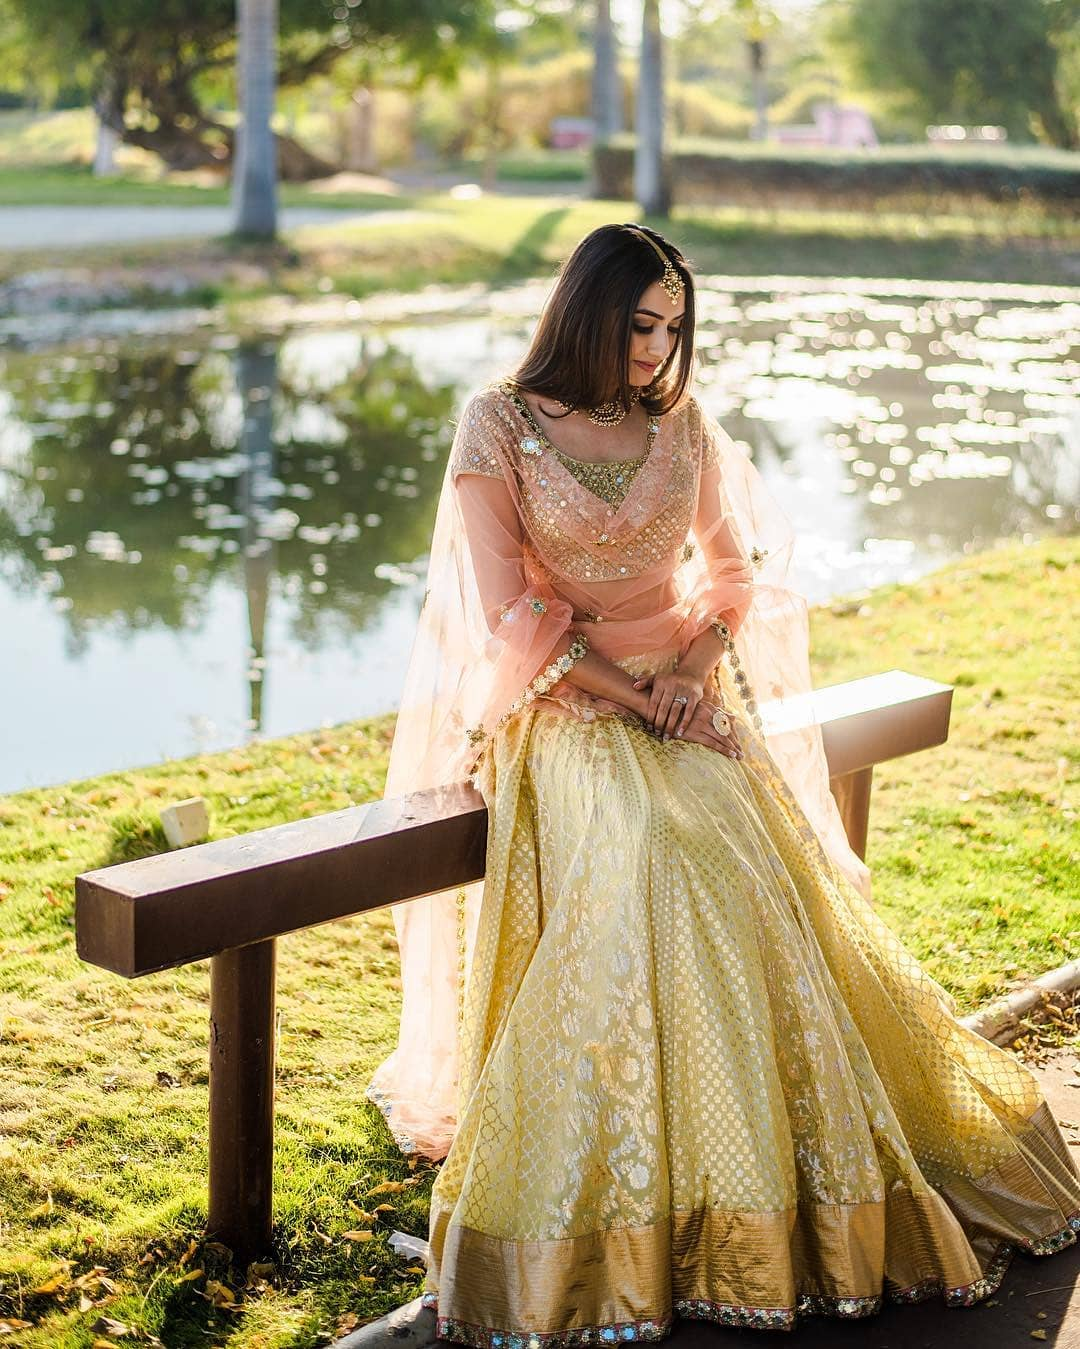 Pastel magic: Light Lehenga Designs for Bride & Bridesmaid